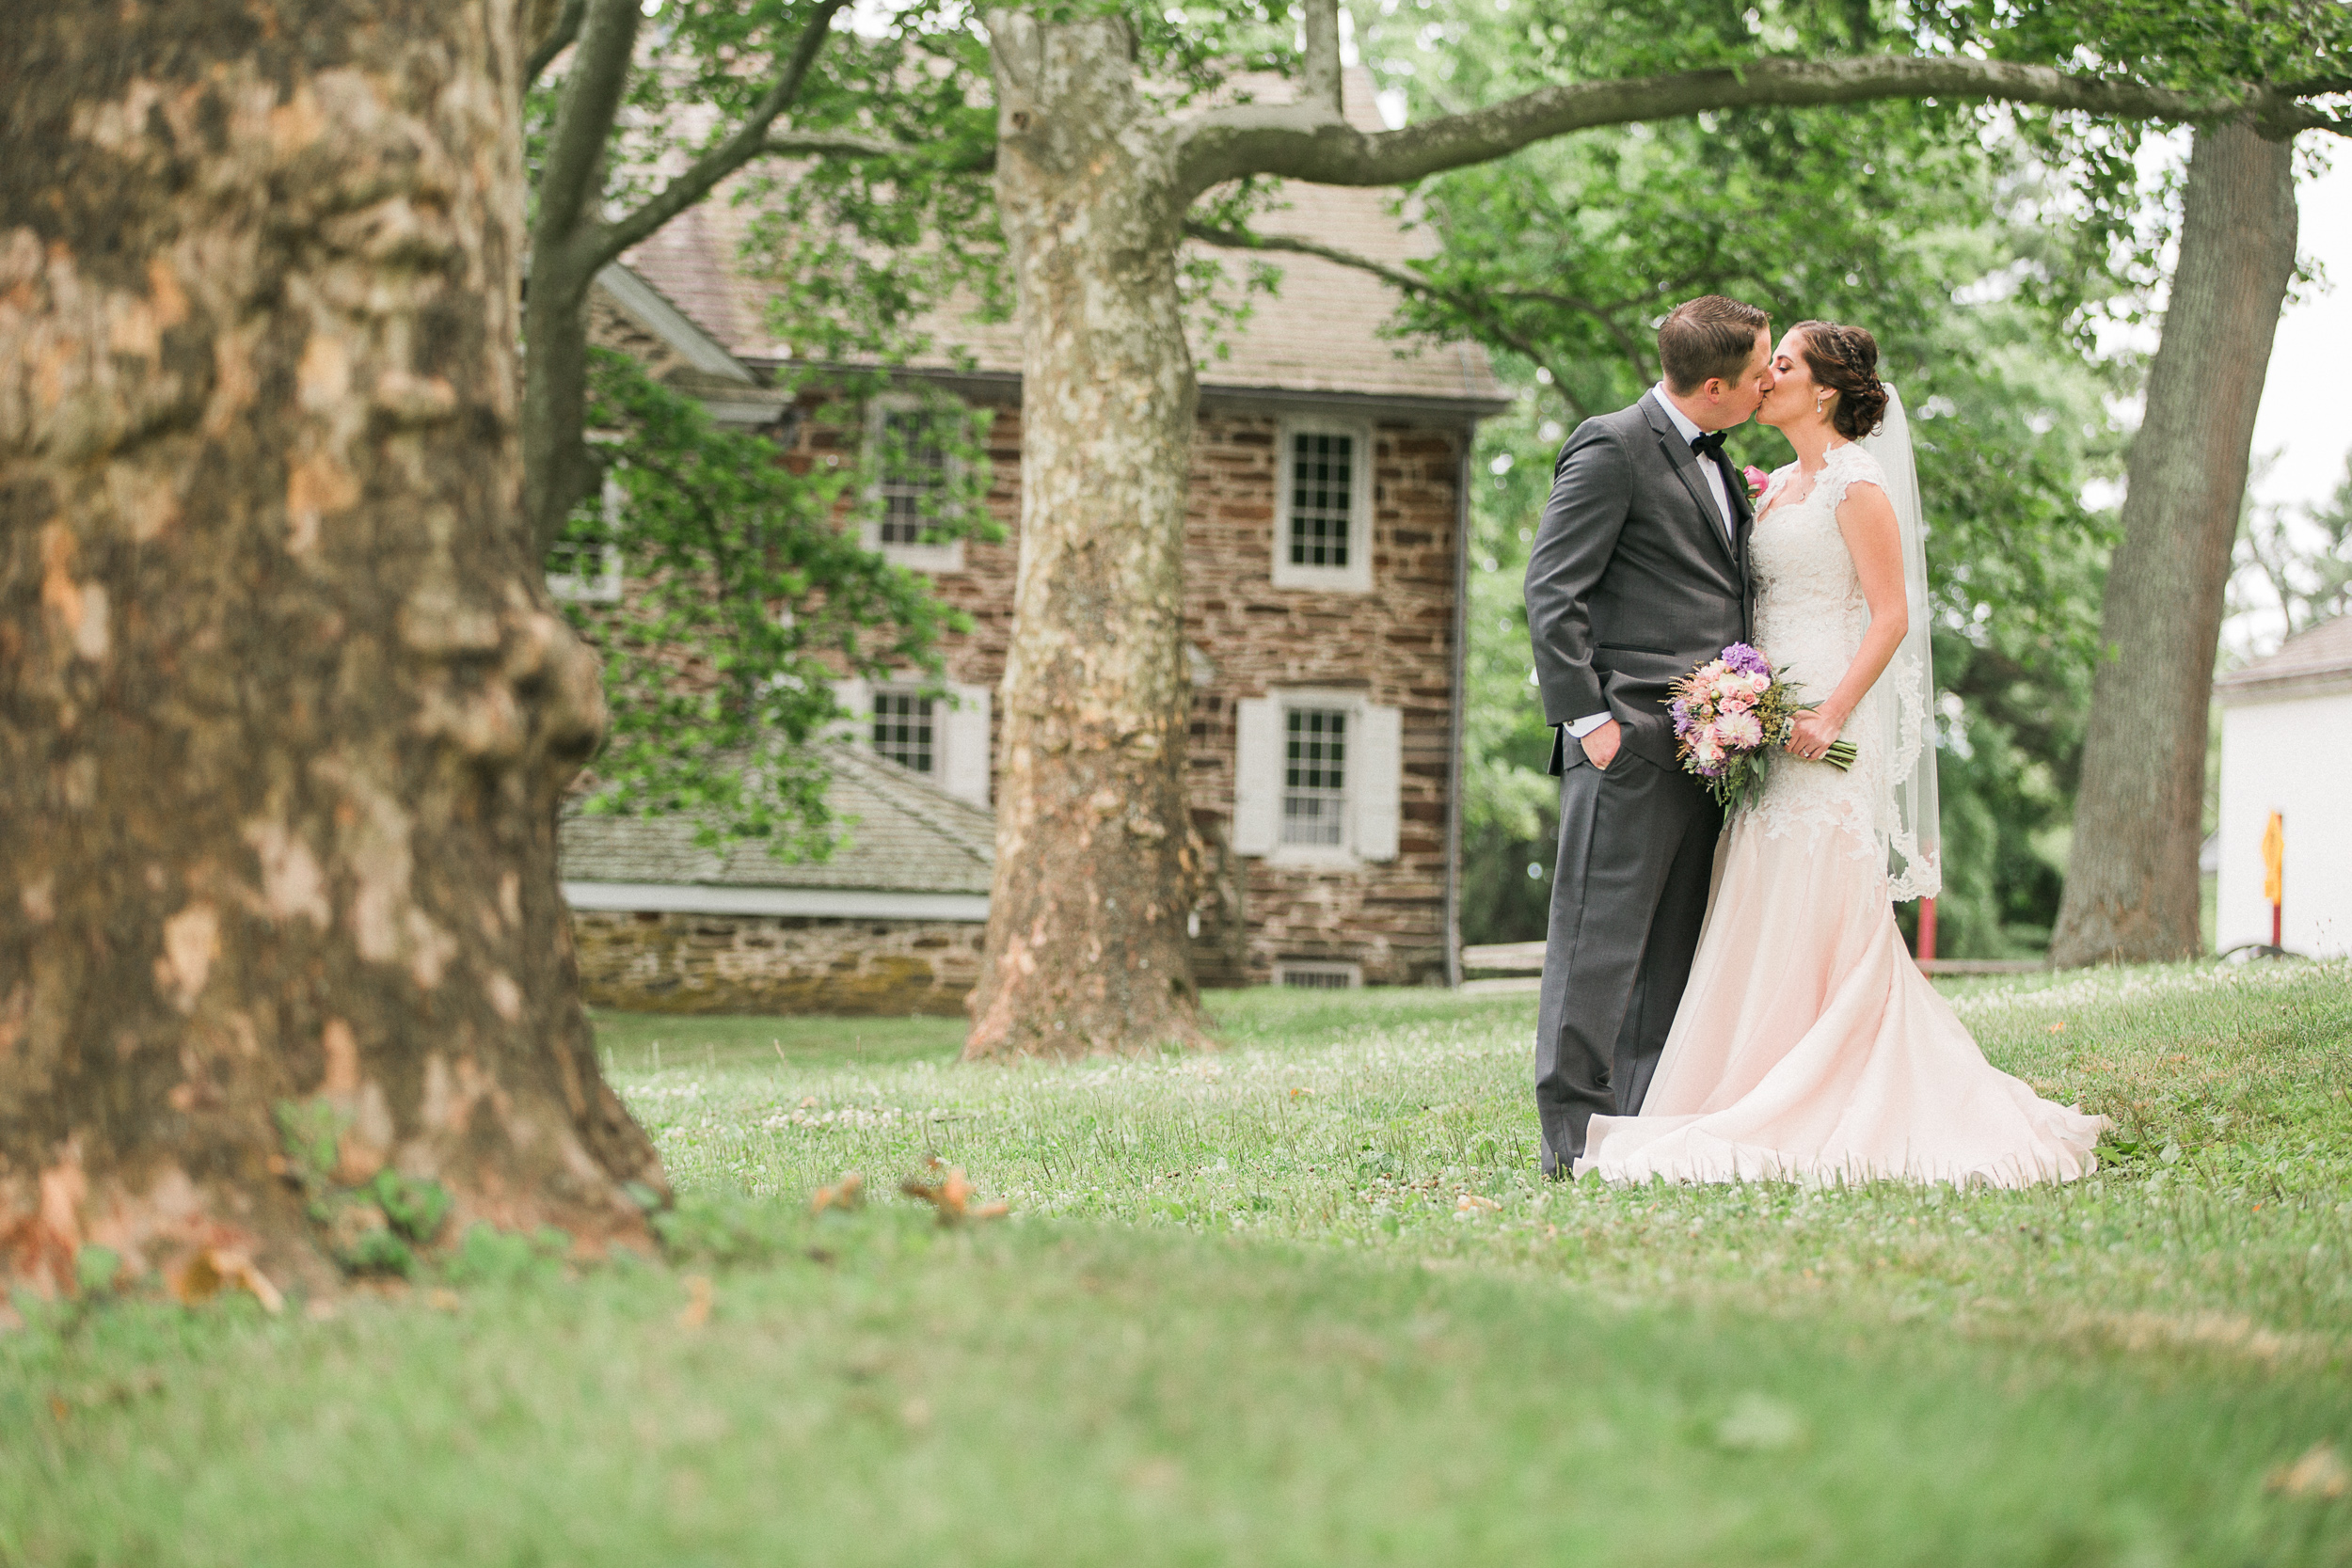 Washington Crossing PA Wedding WRHPhotography-26.jpg